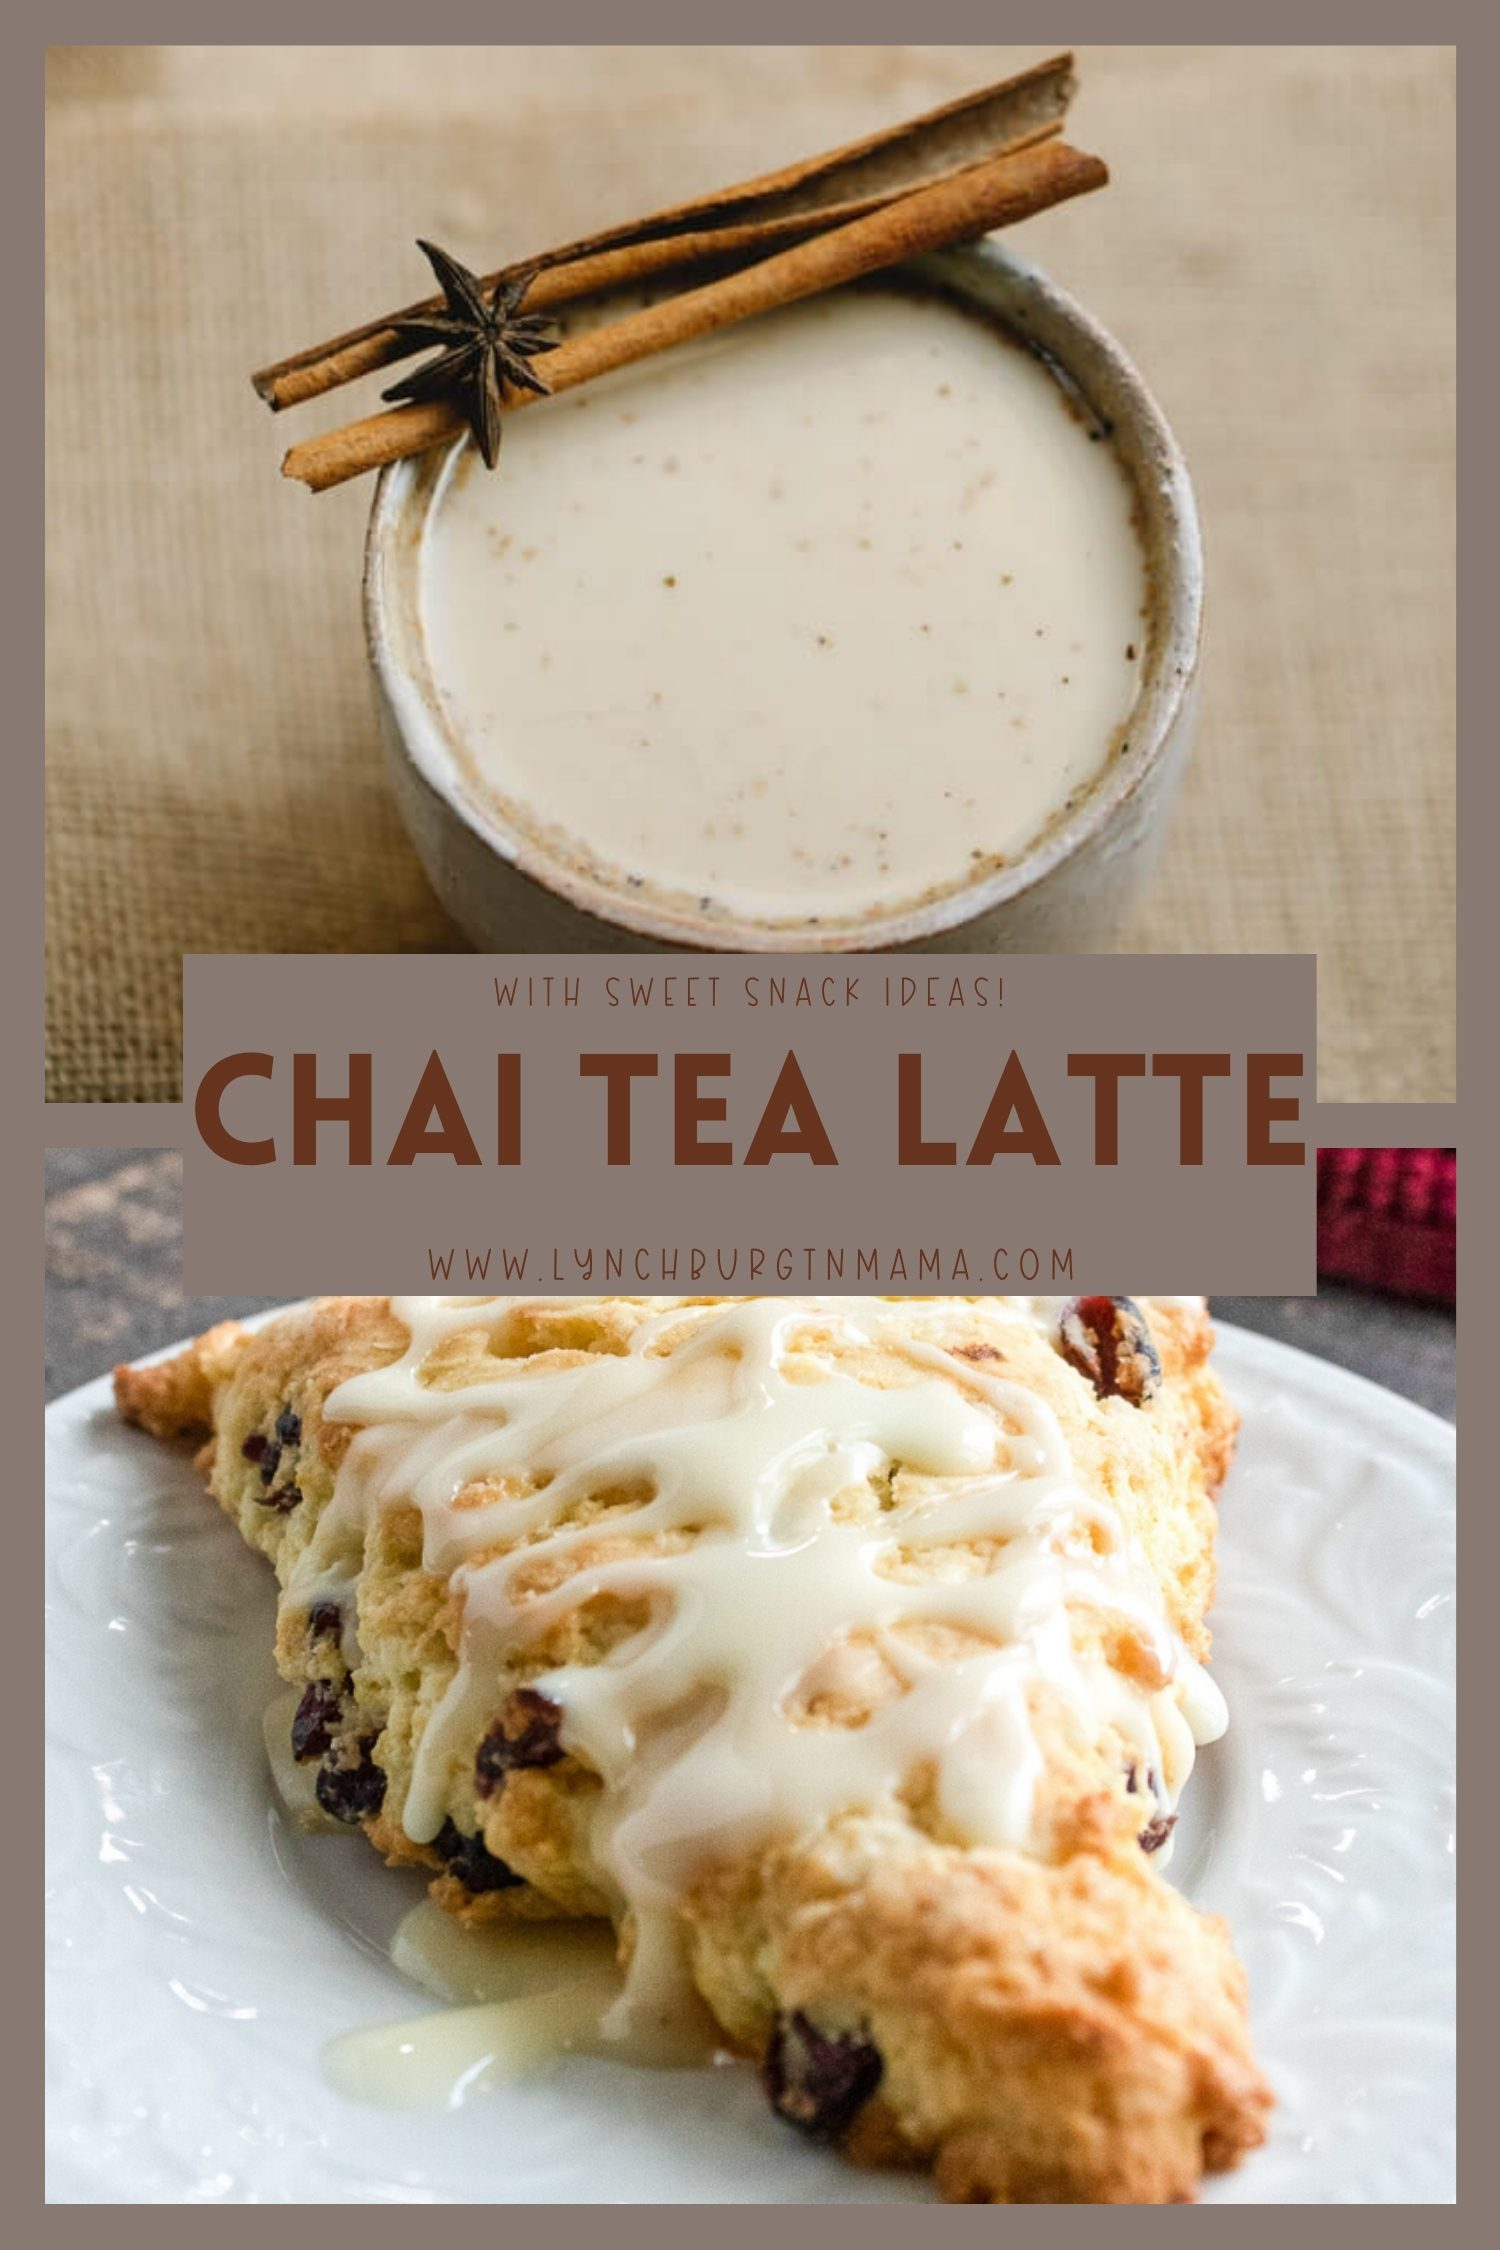 Have you made a chai tea latte? Turning this wonderful mixture of spices and tea into chai tea that you can enjoy takes a bit of time, but it's completely worth it when you put that warm goodness to your lips.